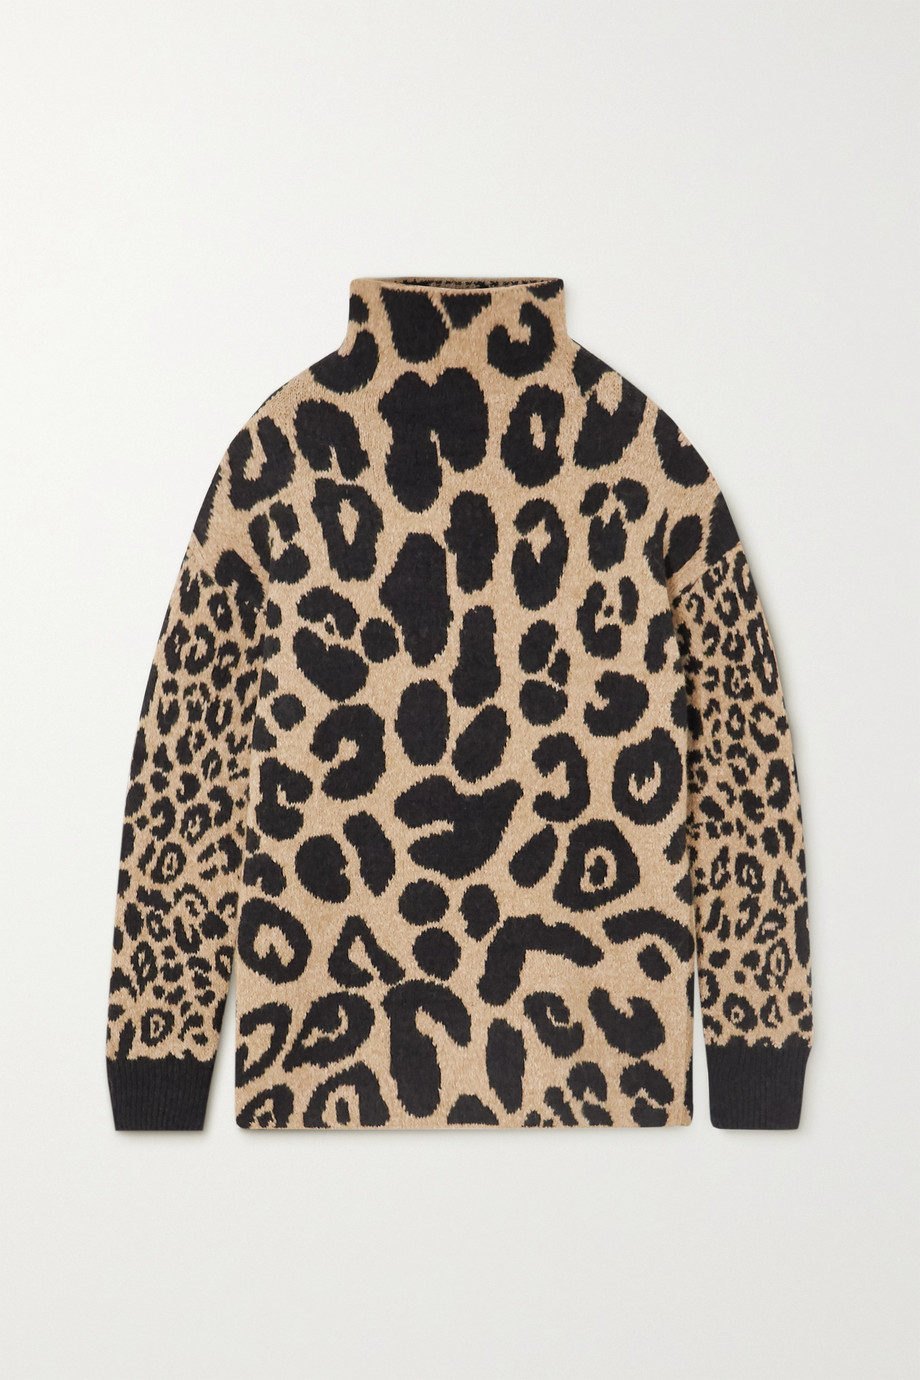 Stella McCartney Leopard-intarsia knitted sweater